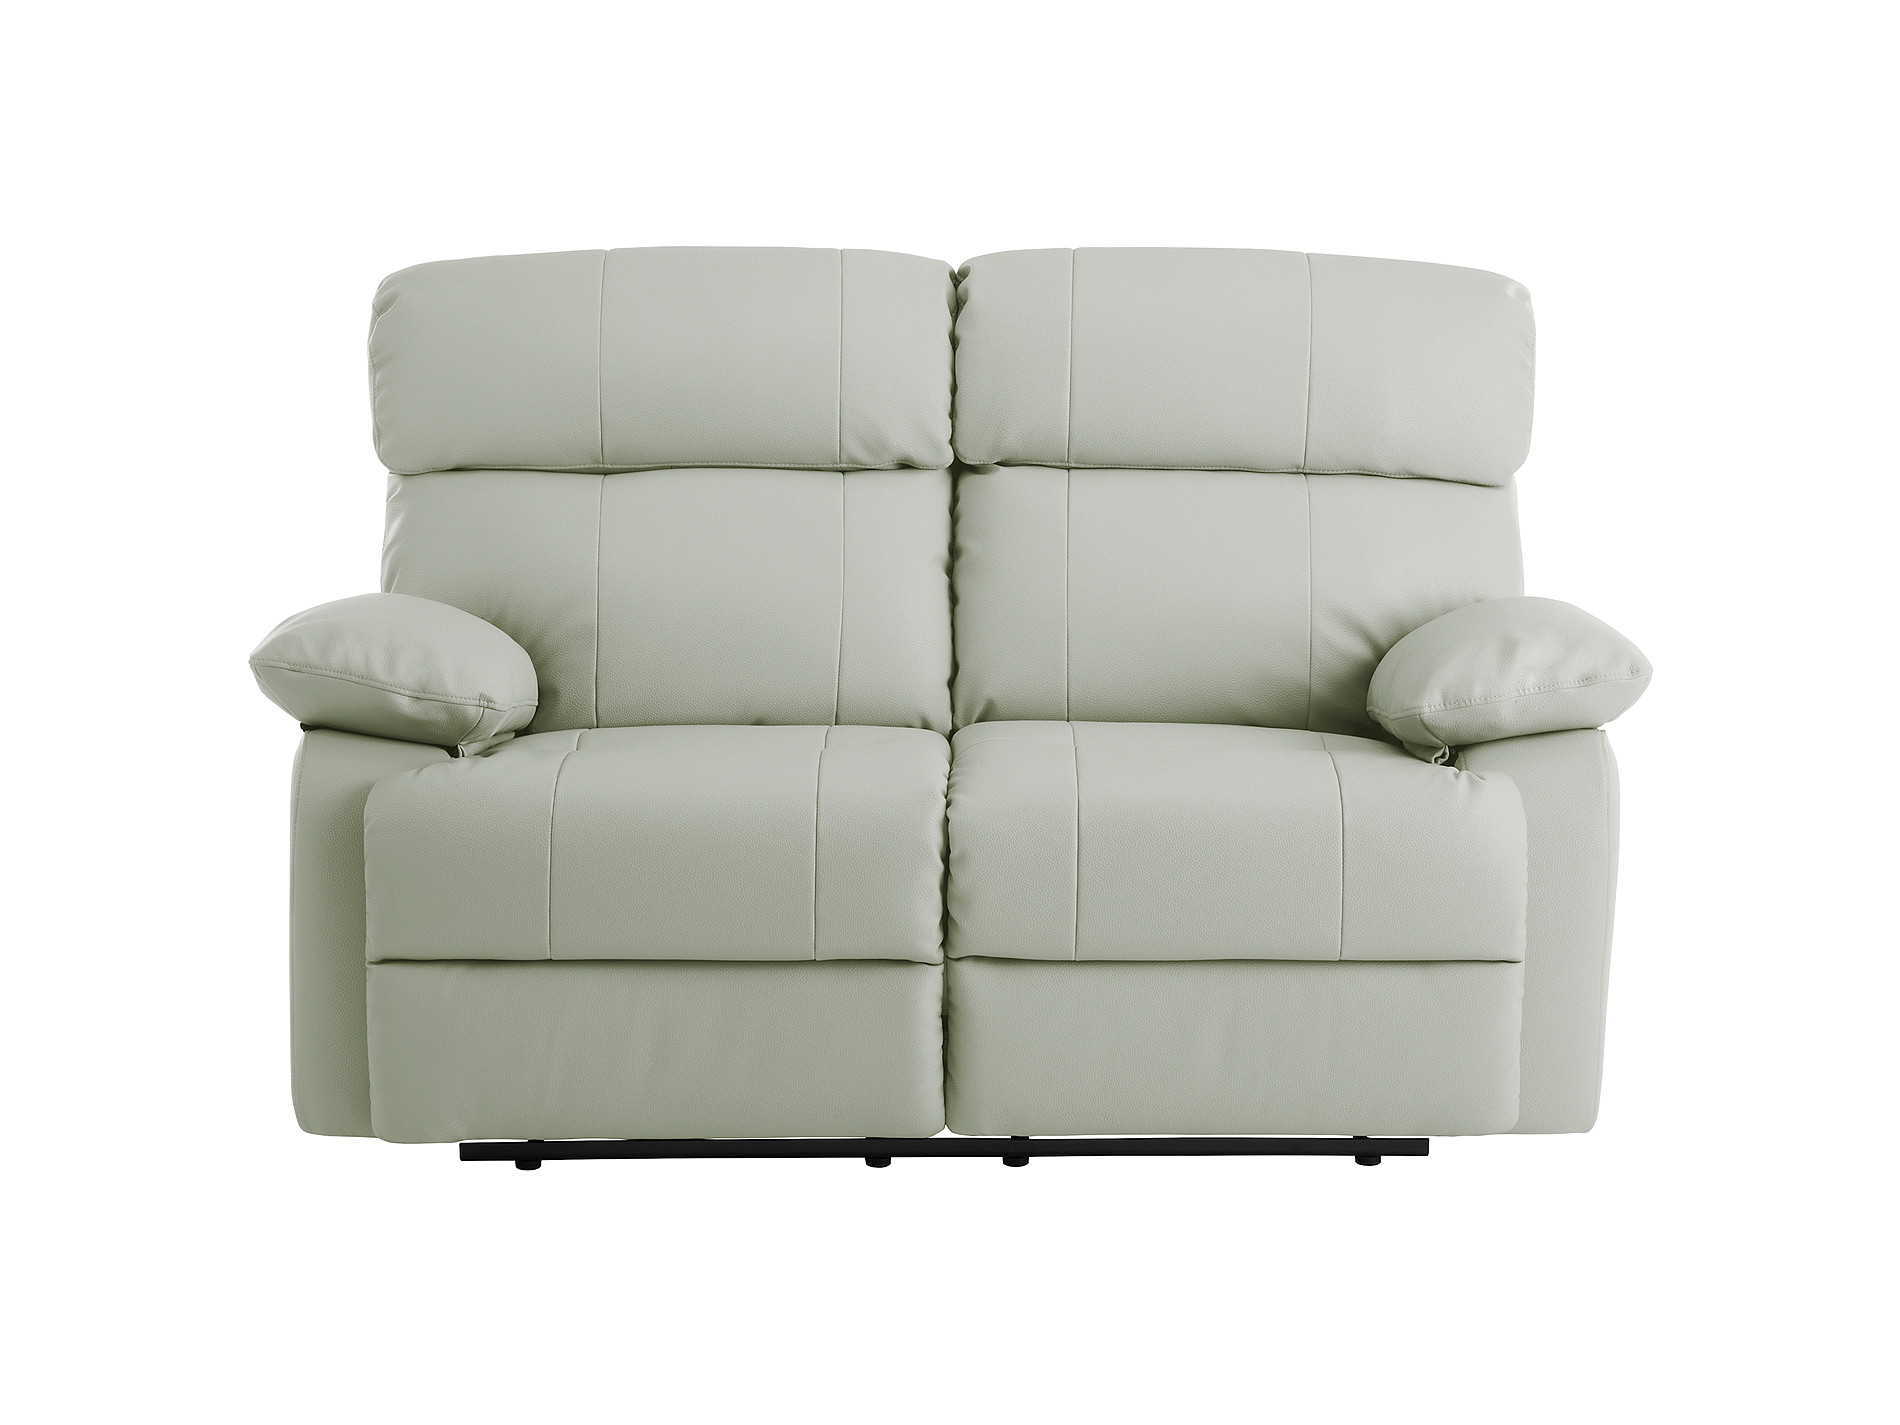 Quantity for Leather sectional sofa with electric recliners